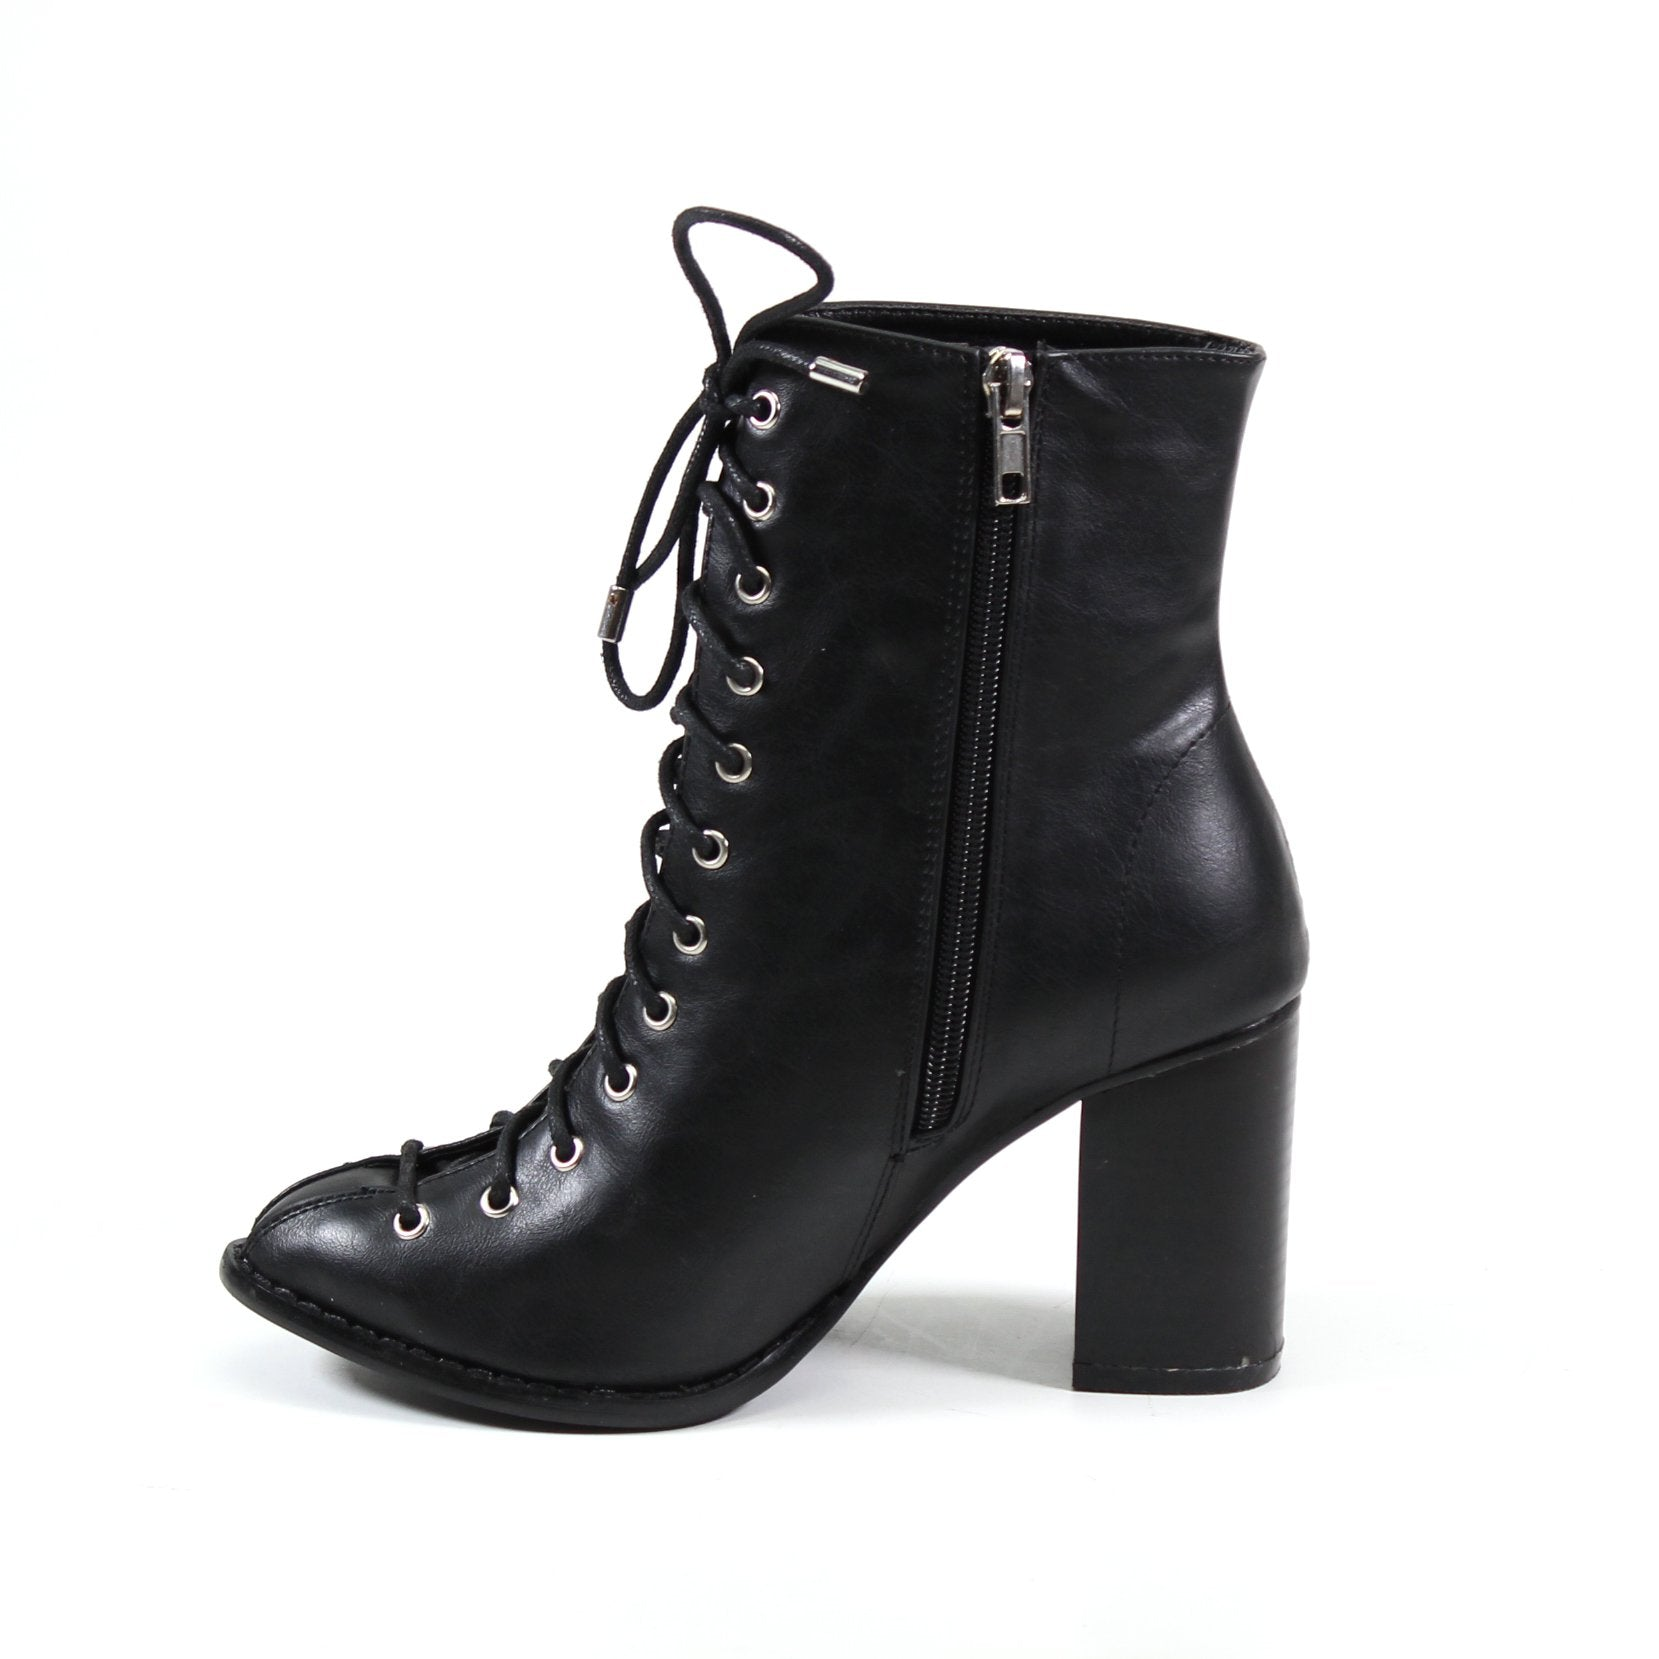 Demand attention when you enter a room in this black vegan leather lace-up imi leather bootie with inside zip and stacked block heel.